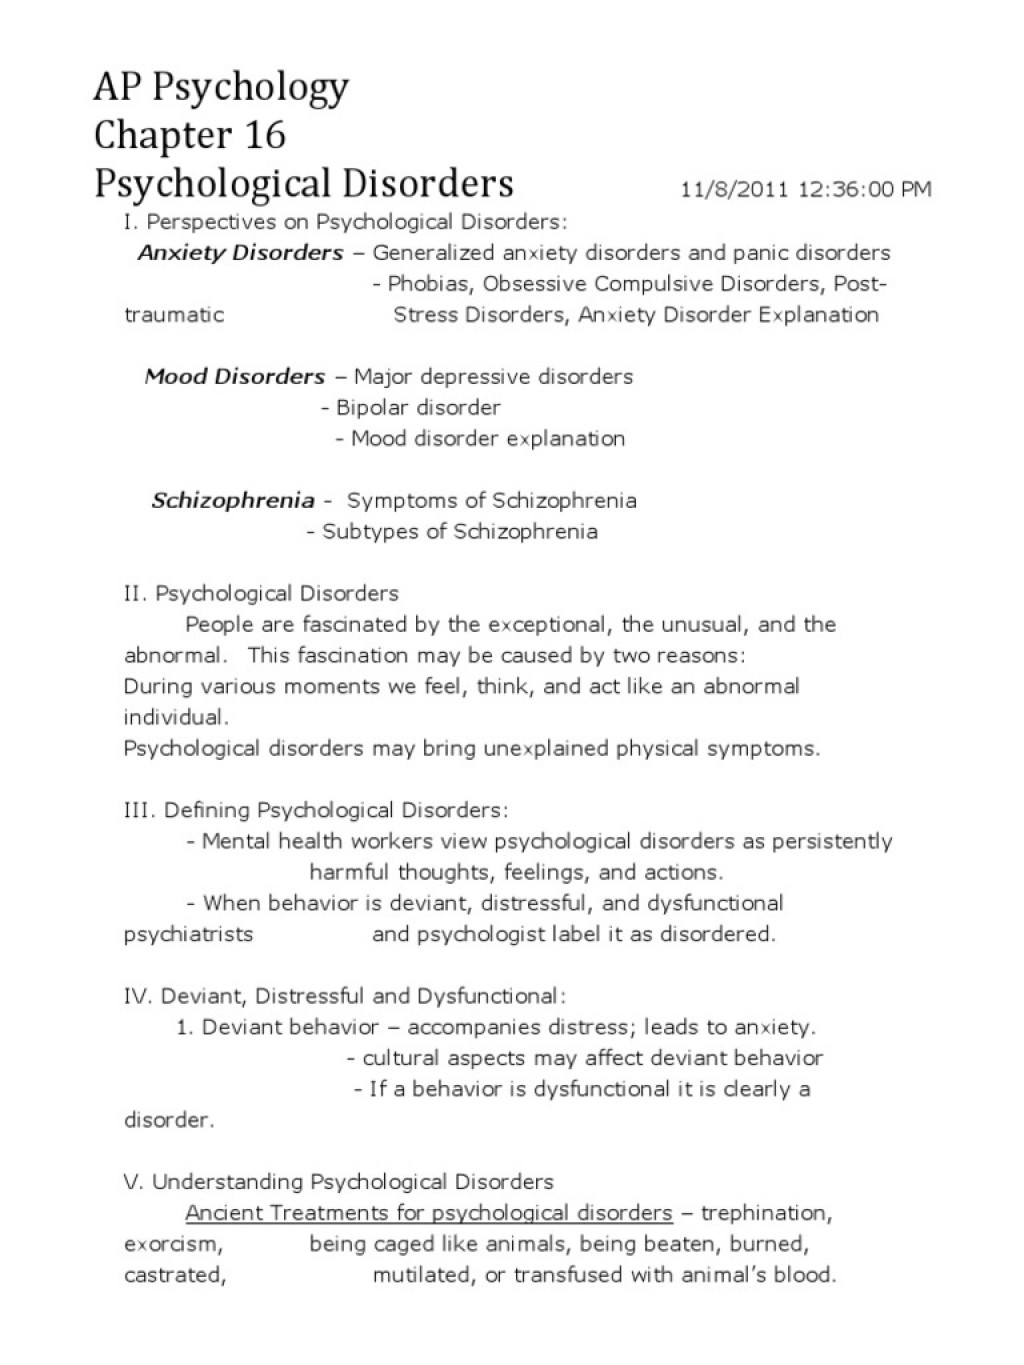 017 Research Paper On Eating Disorders Bipolar Disorder Essay Topics Title Pdf College Introduction Question Conclusion Examples Wonderful Articles And The Media Large